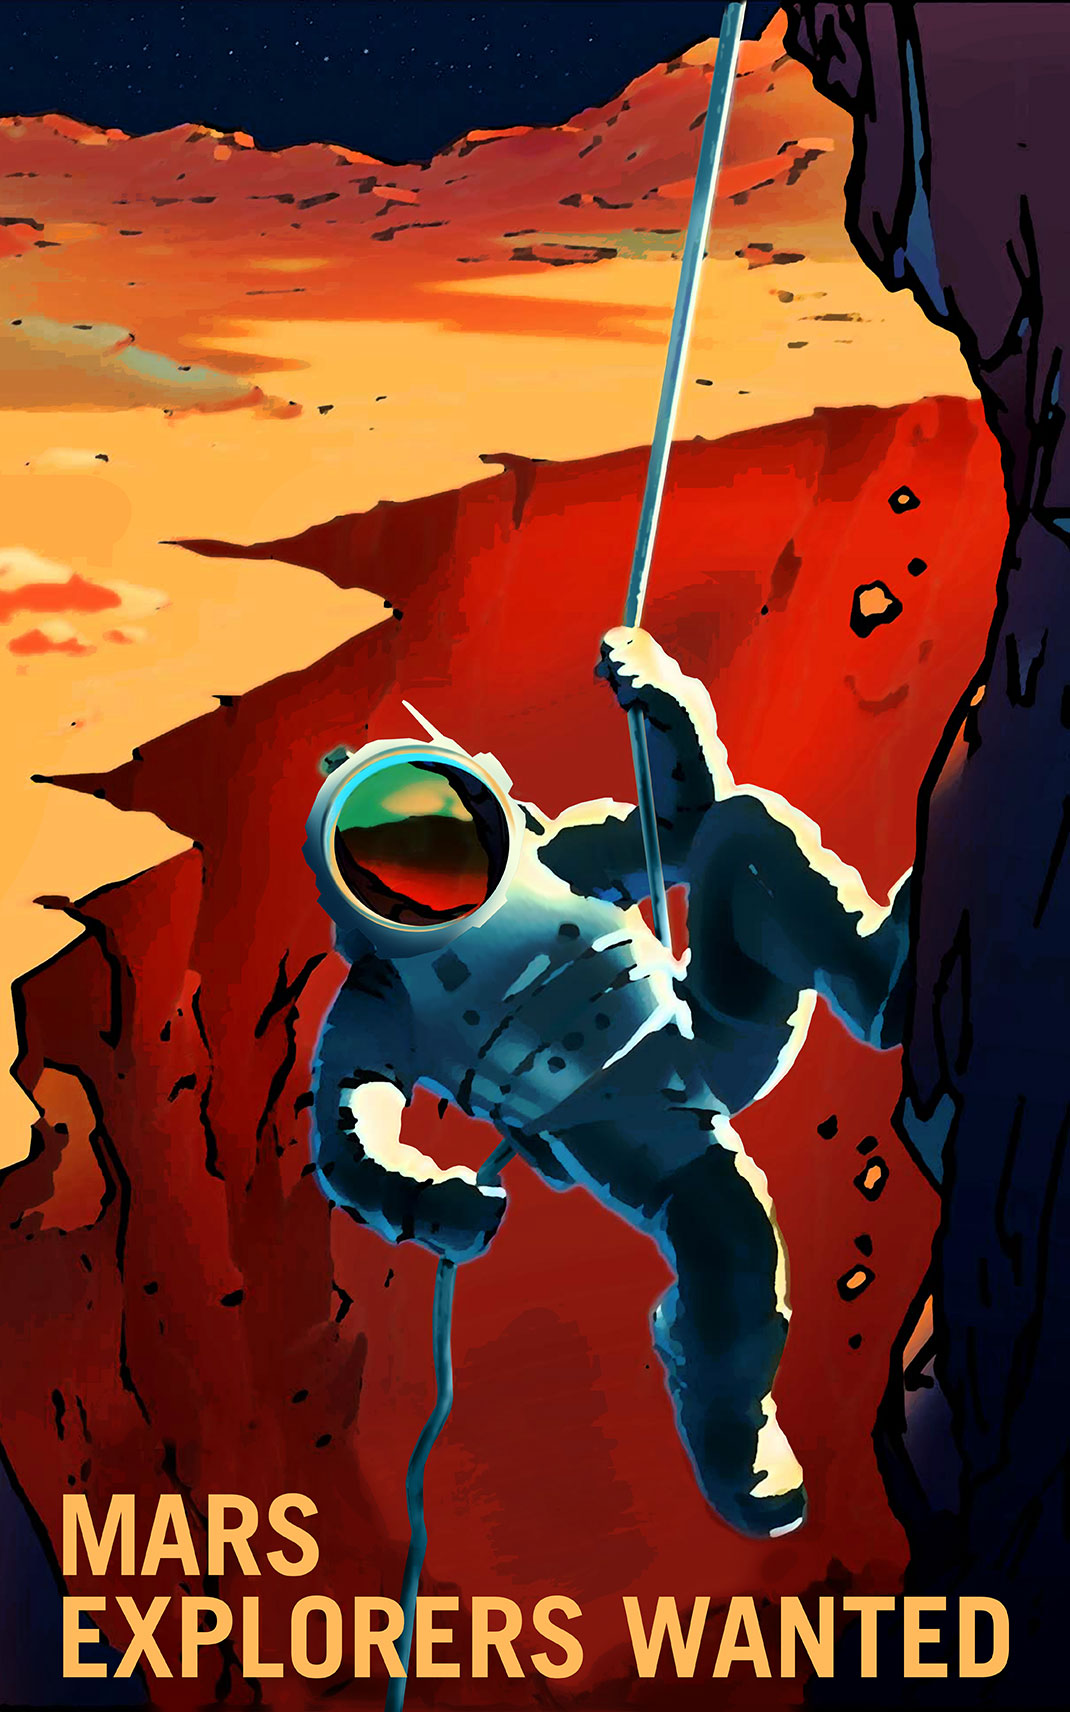 NASA Recruitment Posters Will Inspire You To Conquer Mars-